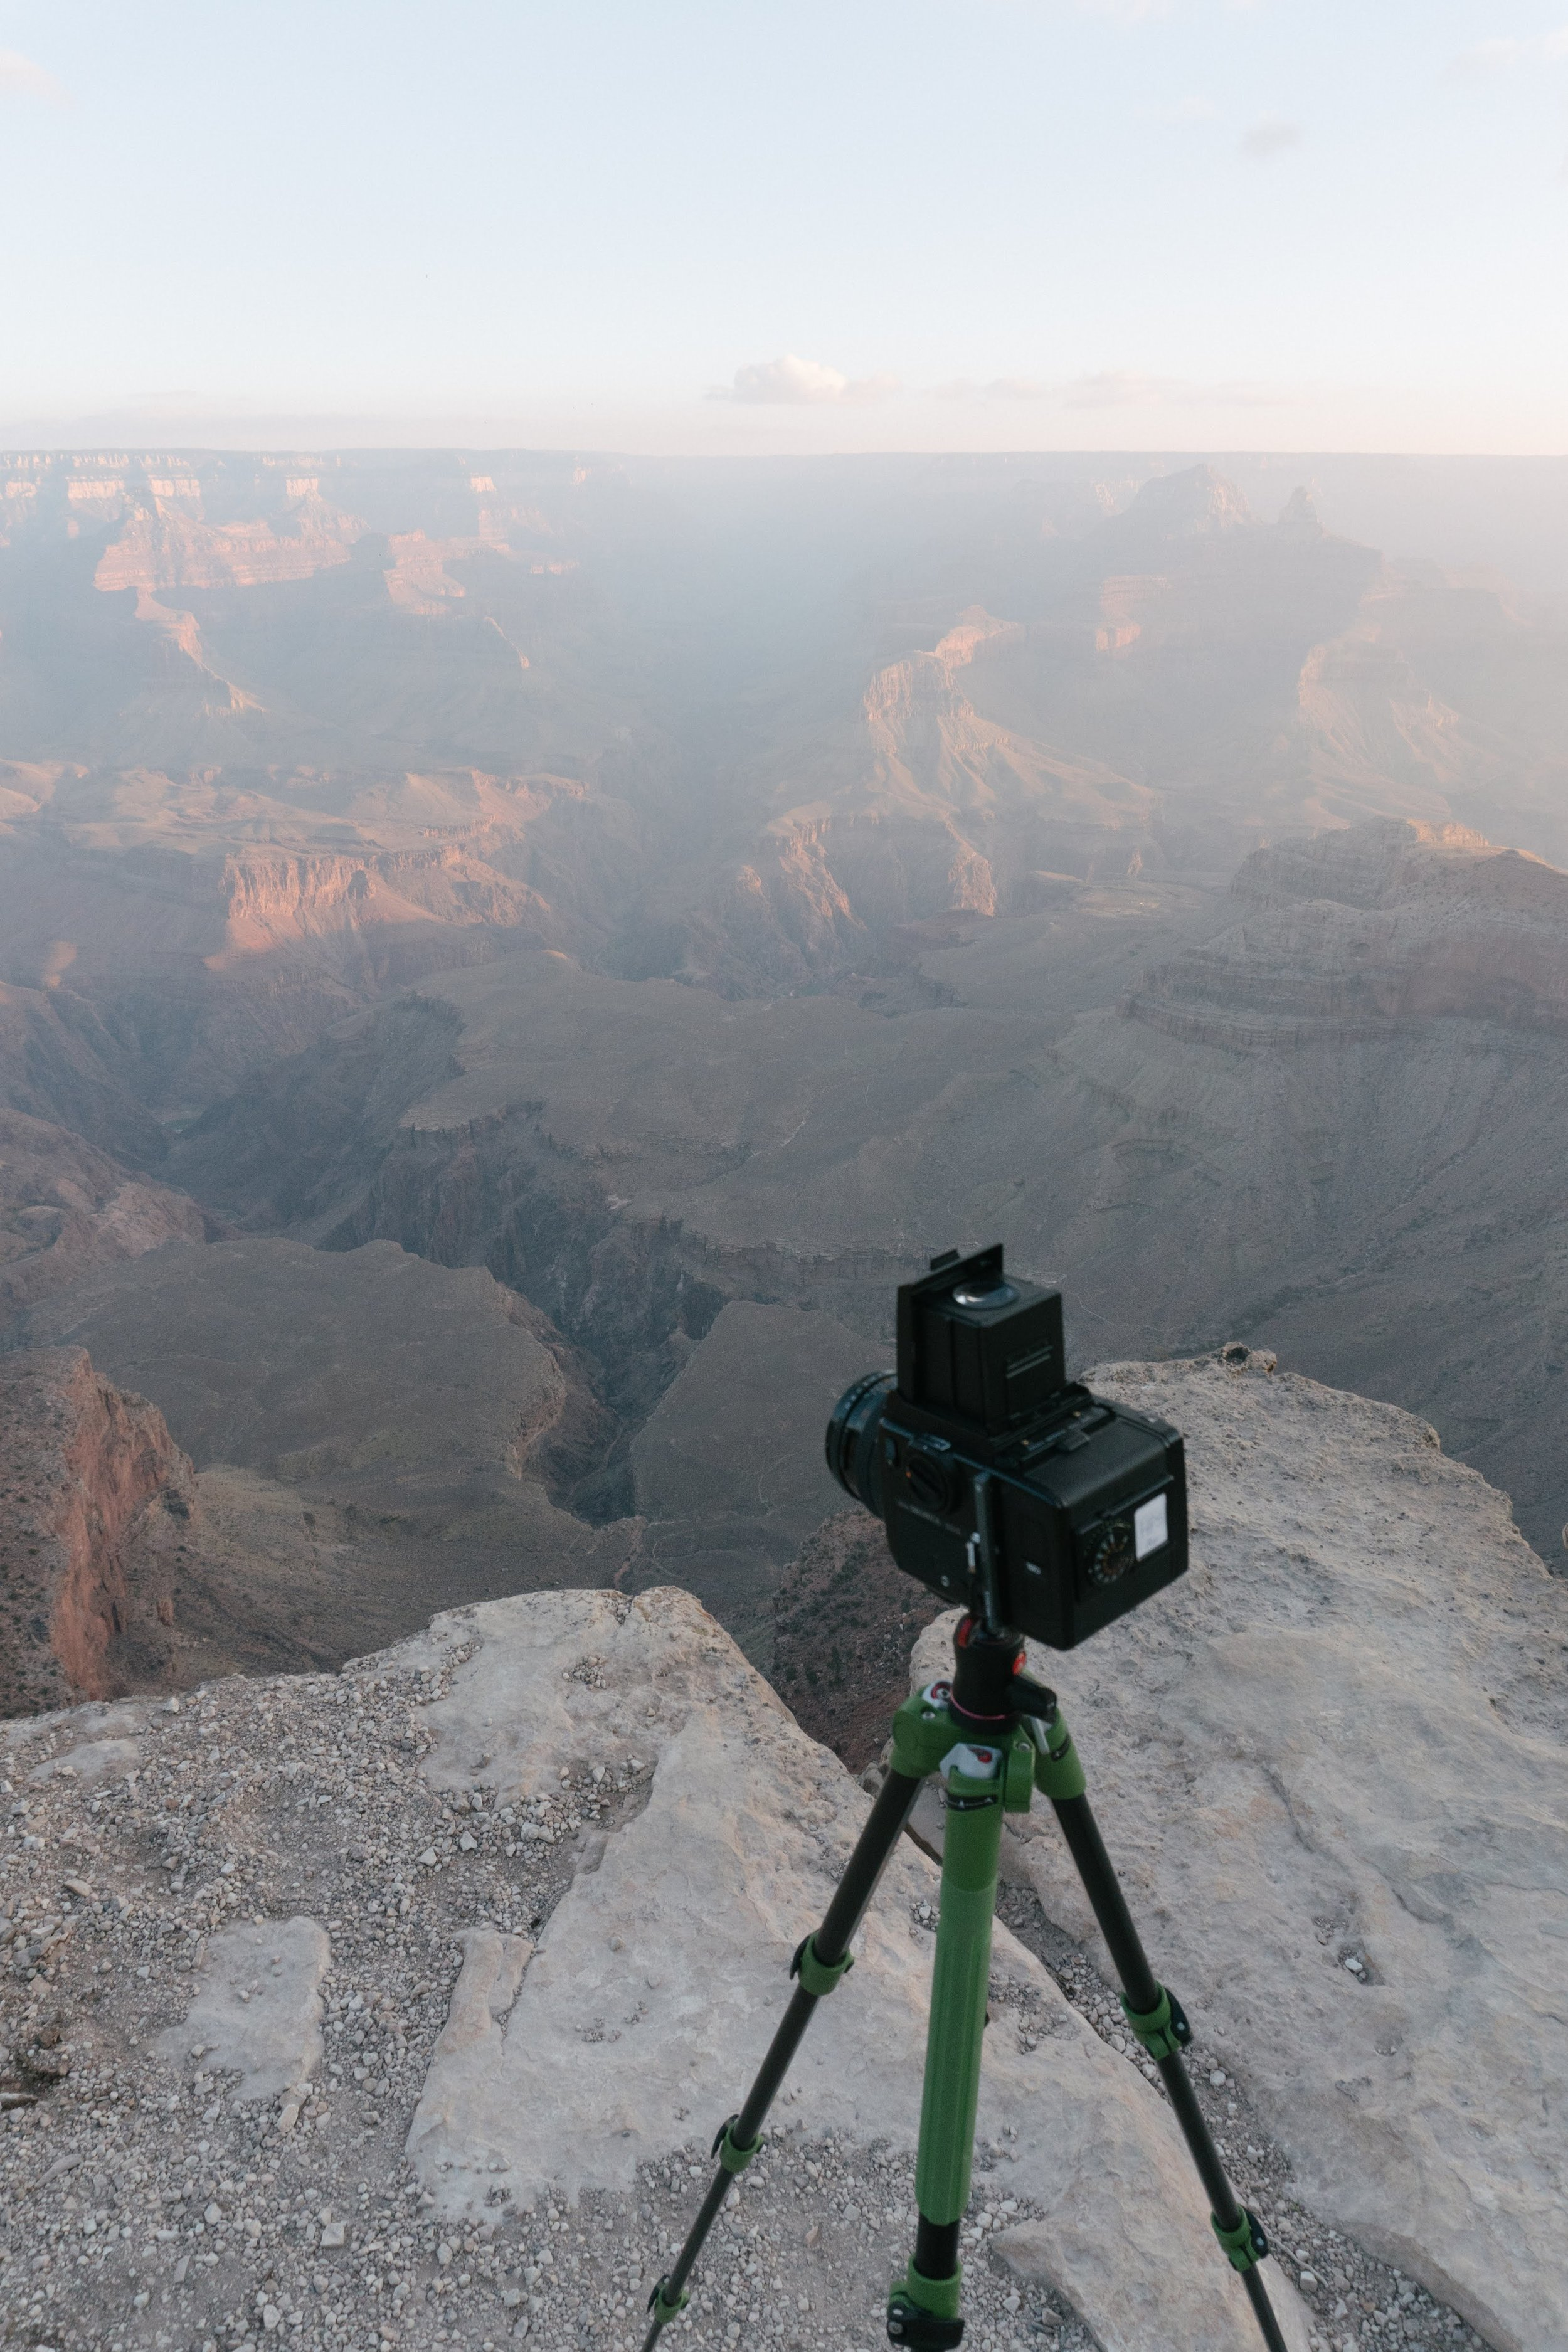 Incredible view and incredible camera. Only a warm coffee could've improved that morning.